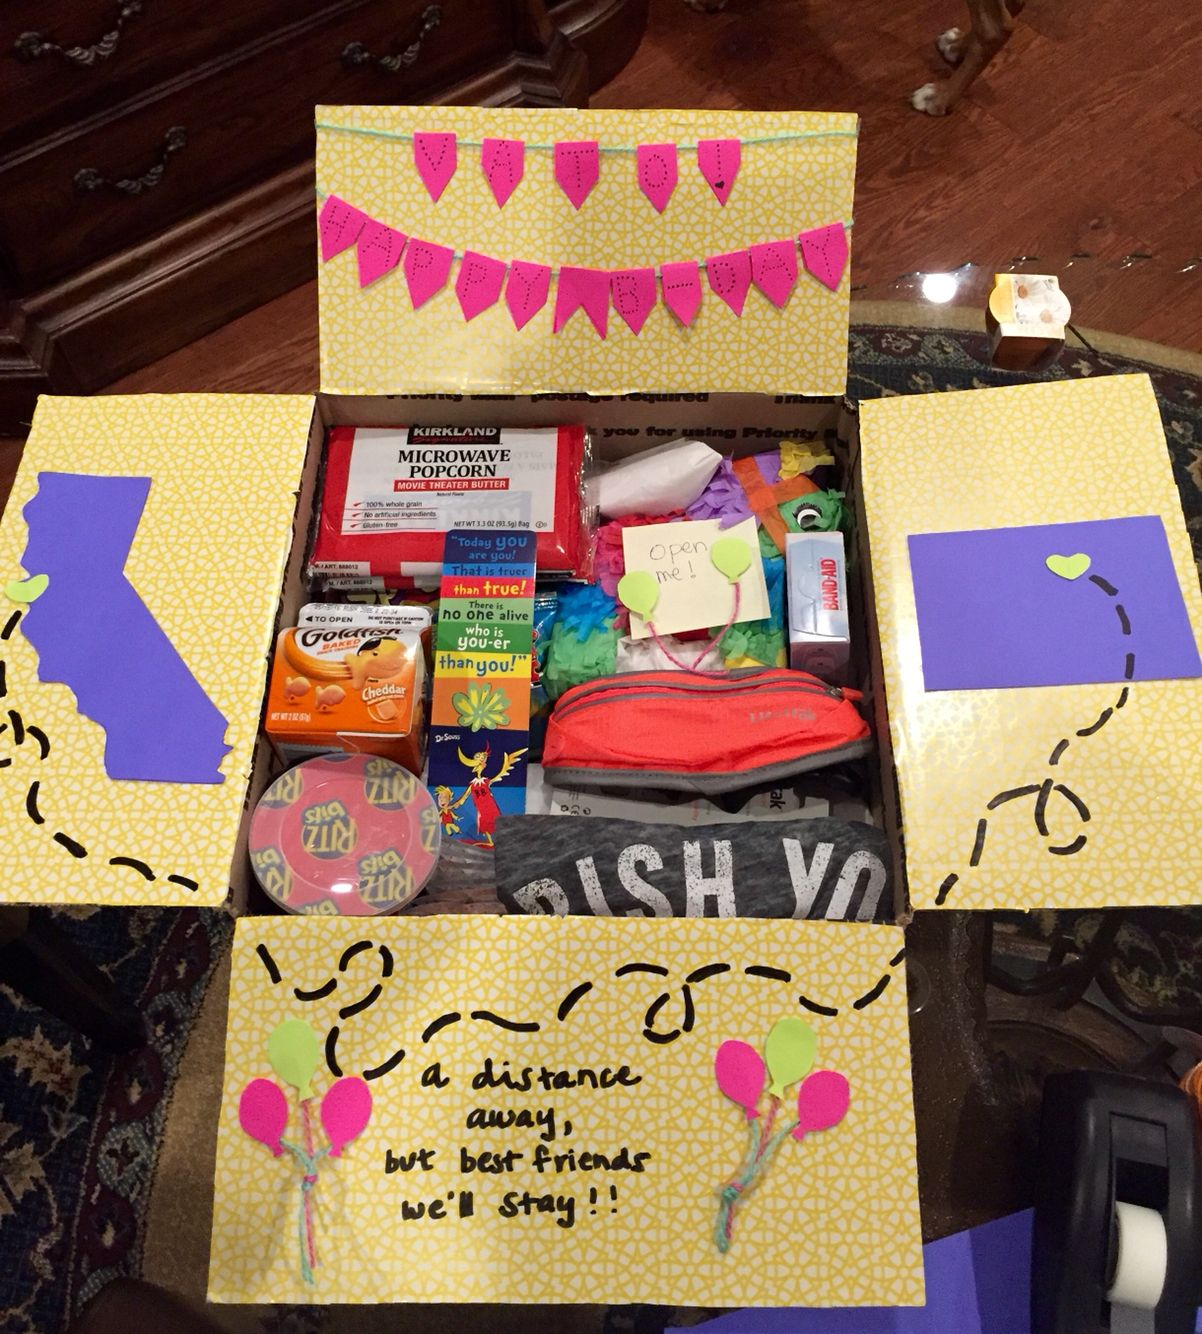 Christmas Gift Ideas For Girl Best Friends: Birthday Care Package For A Best Friend. @Gigi Gonzalez